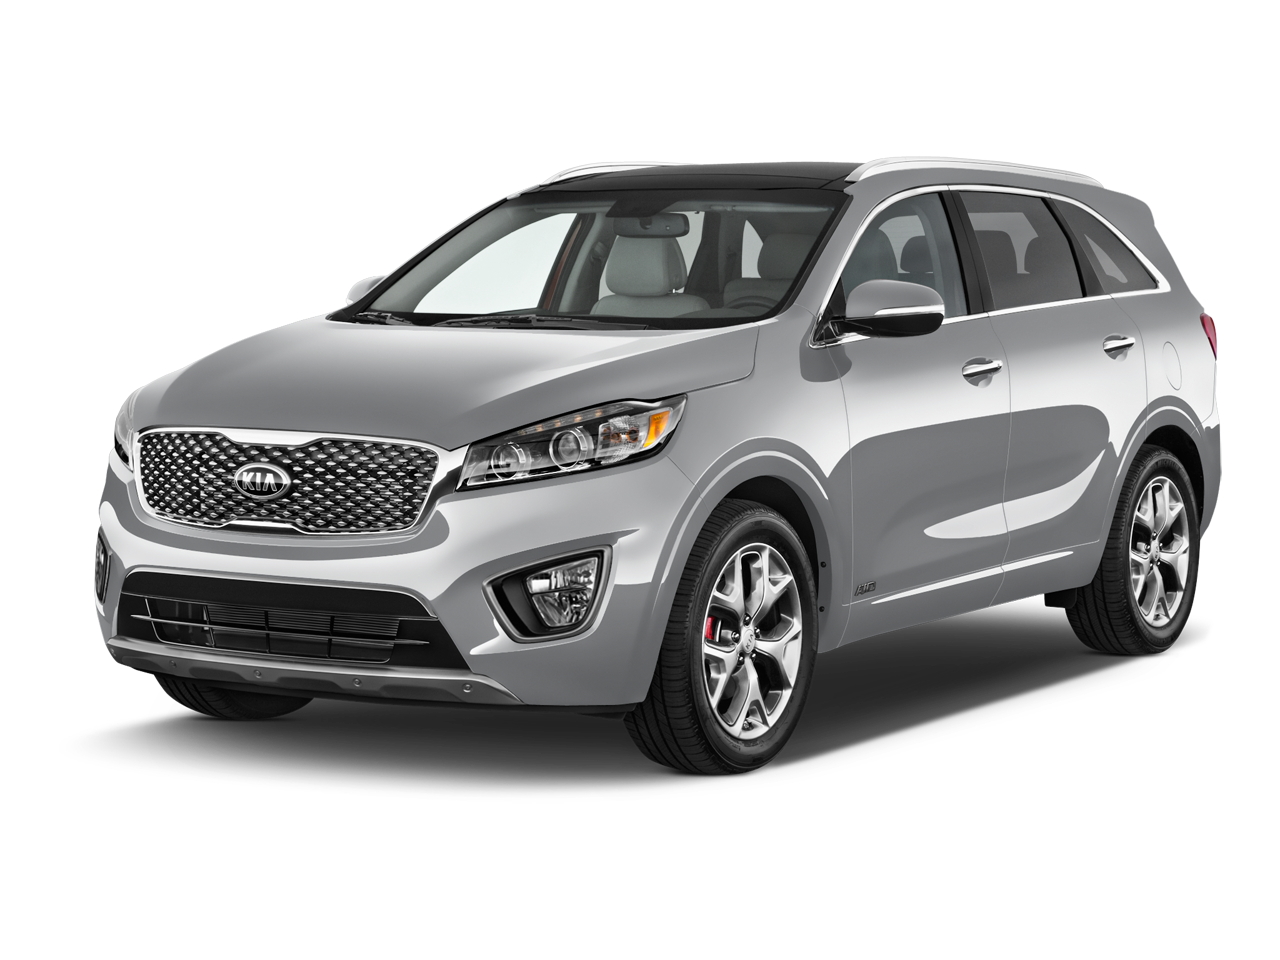 new 2017 kia sorento sx near selma ca selma kia. Black Bedroom Furniture Sets. Home Design Ideas